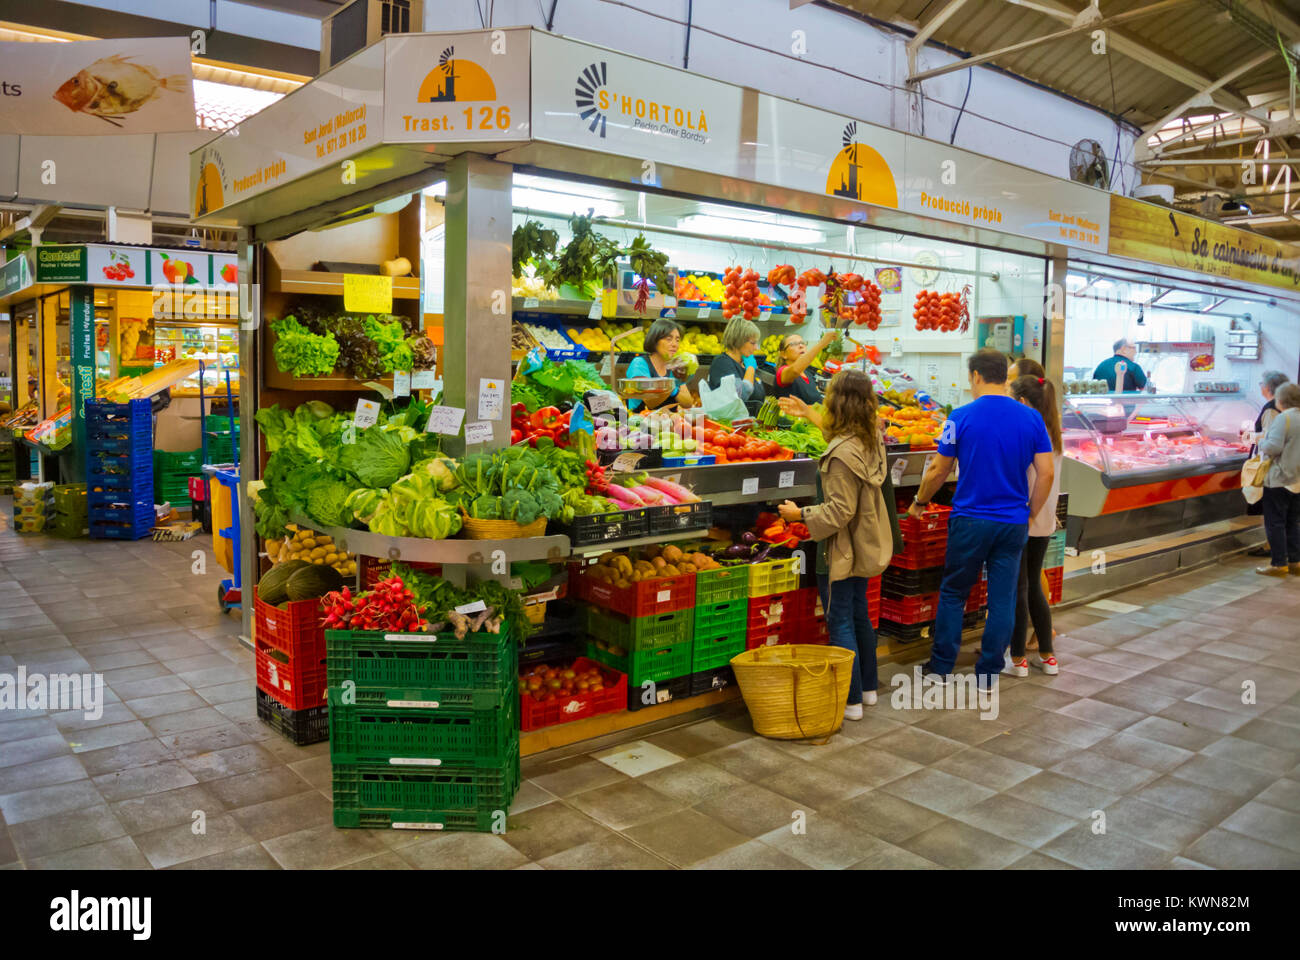 Vegetable stall, Mercat de Santa Catalina, market hall, Palma, Mallorca, Balearic islands, Spain - Stock Image